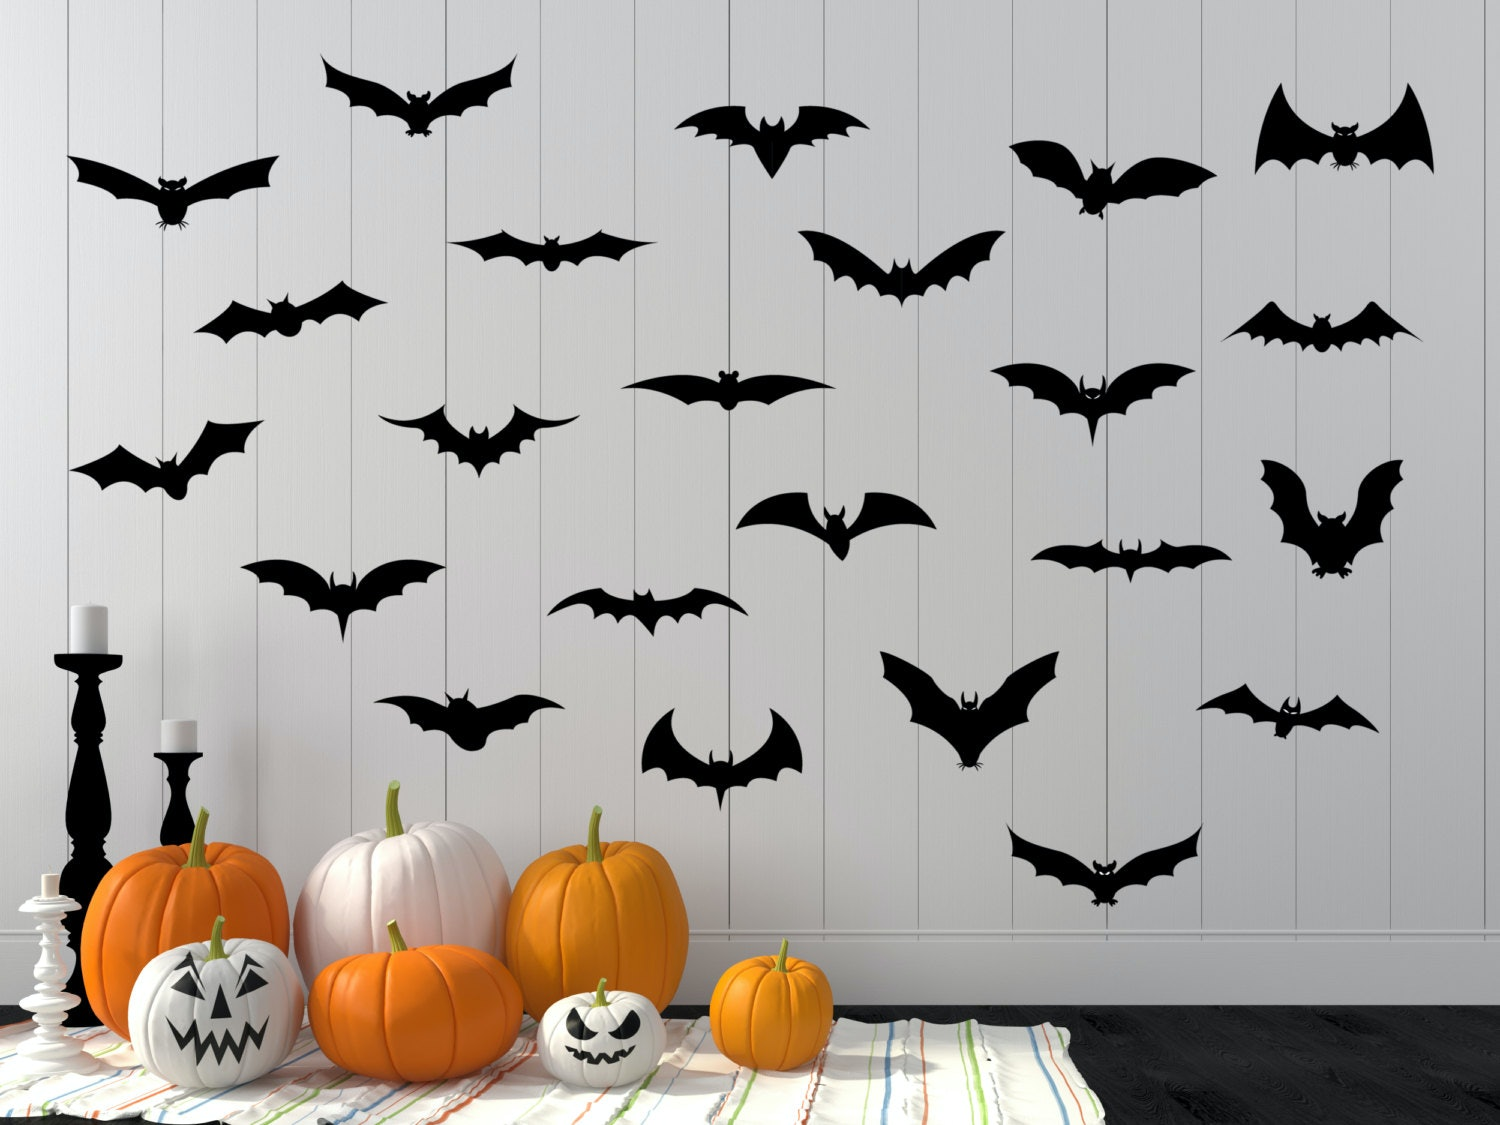 20 Cheap Halloween Party Ideas For When You Want To Have Fun